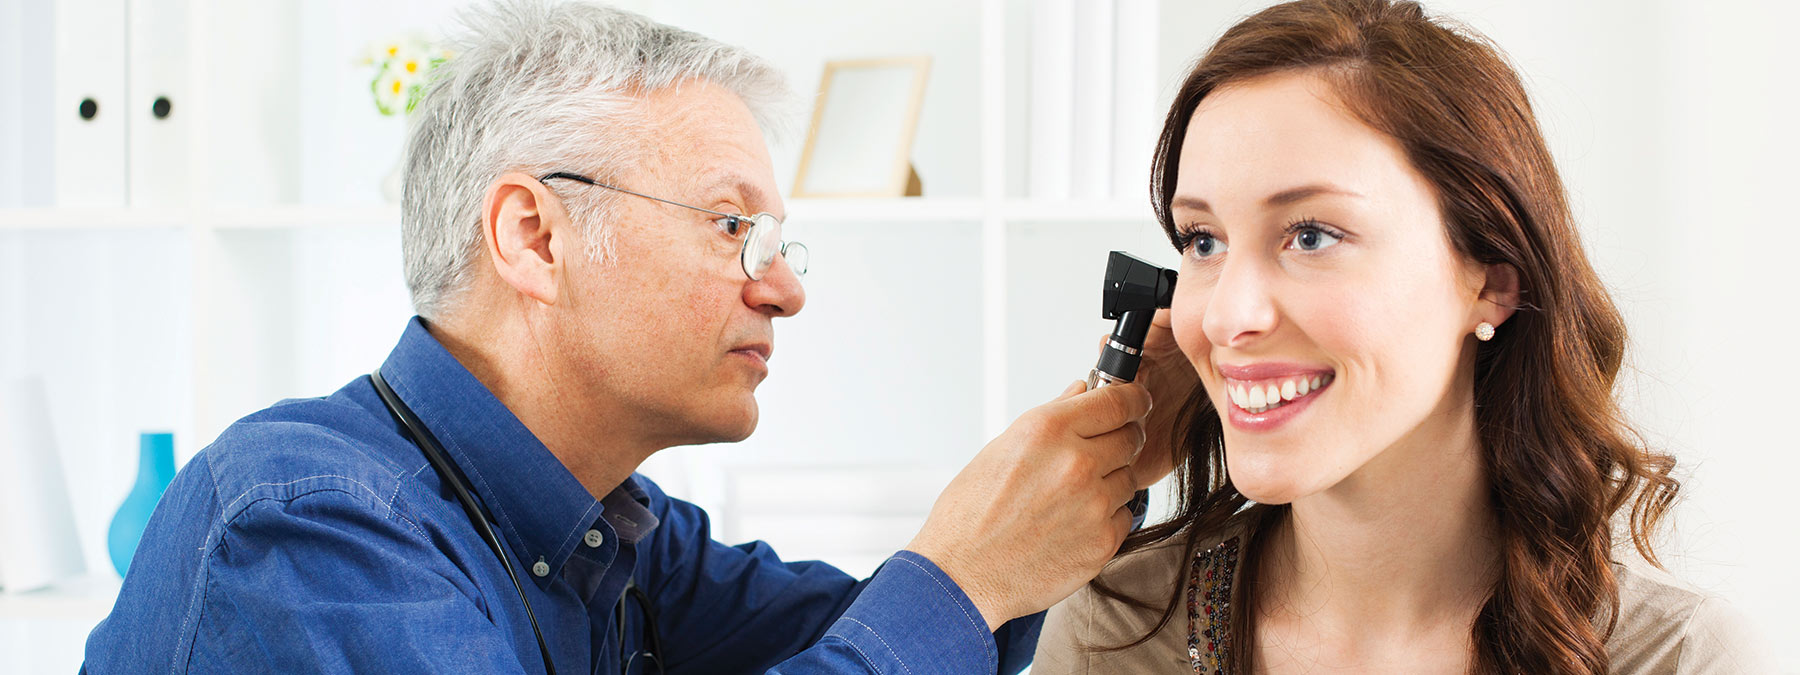 woman getting her hearing checked by an audiologist